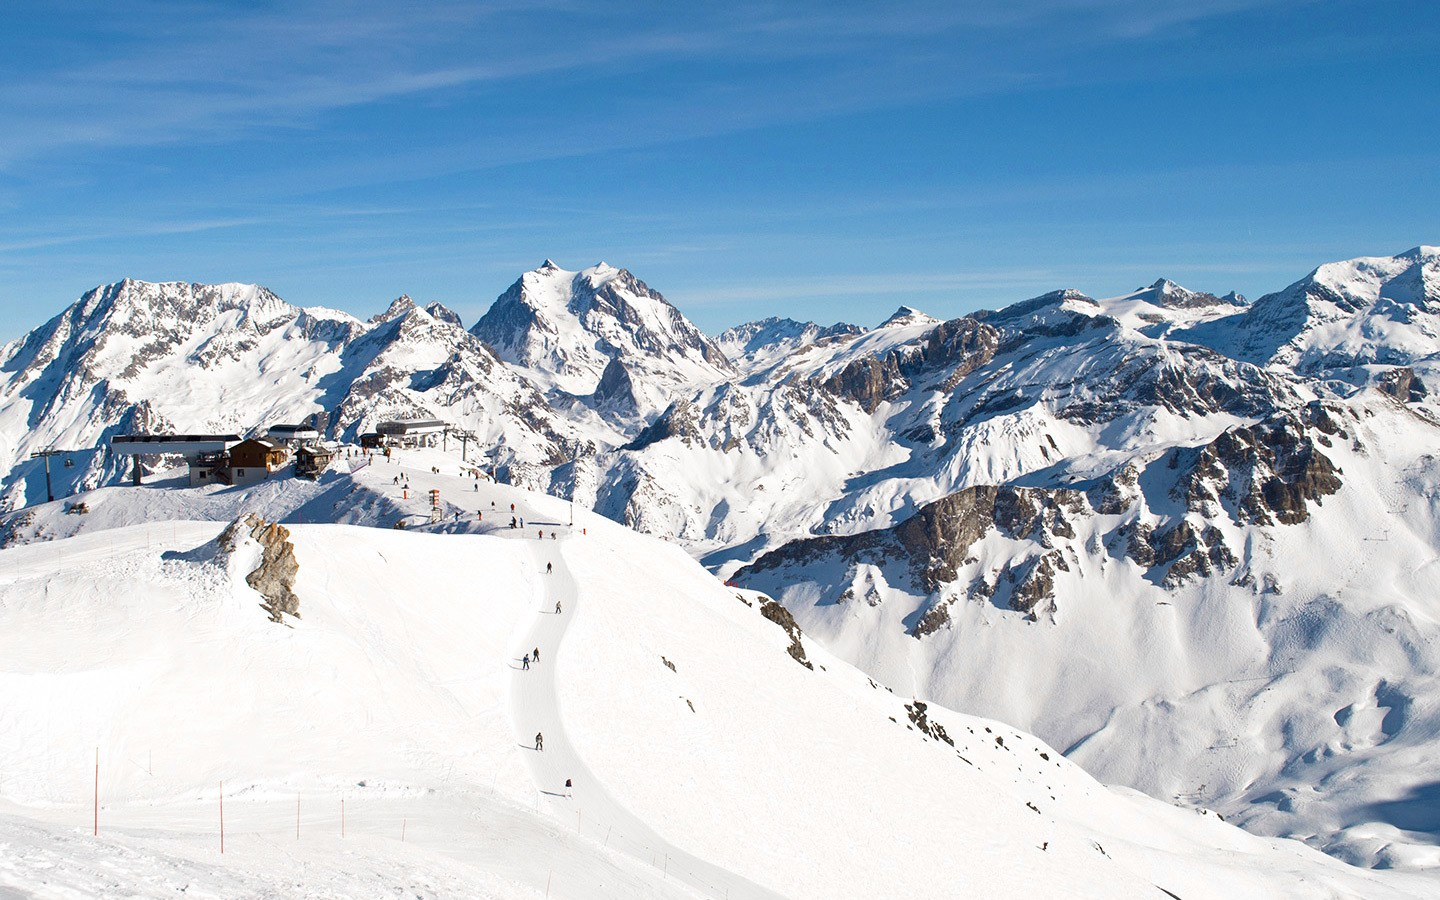 The first-timer's guide to skiing